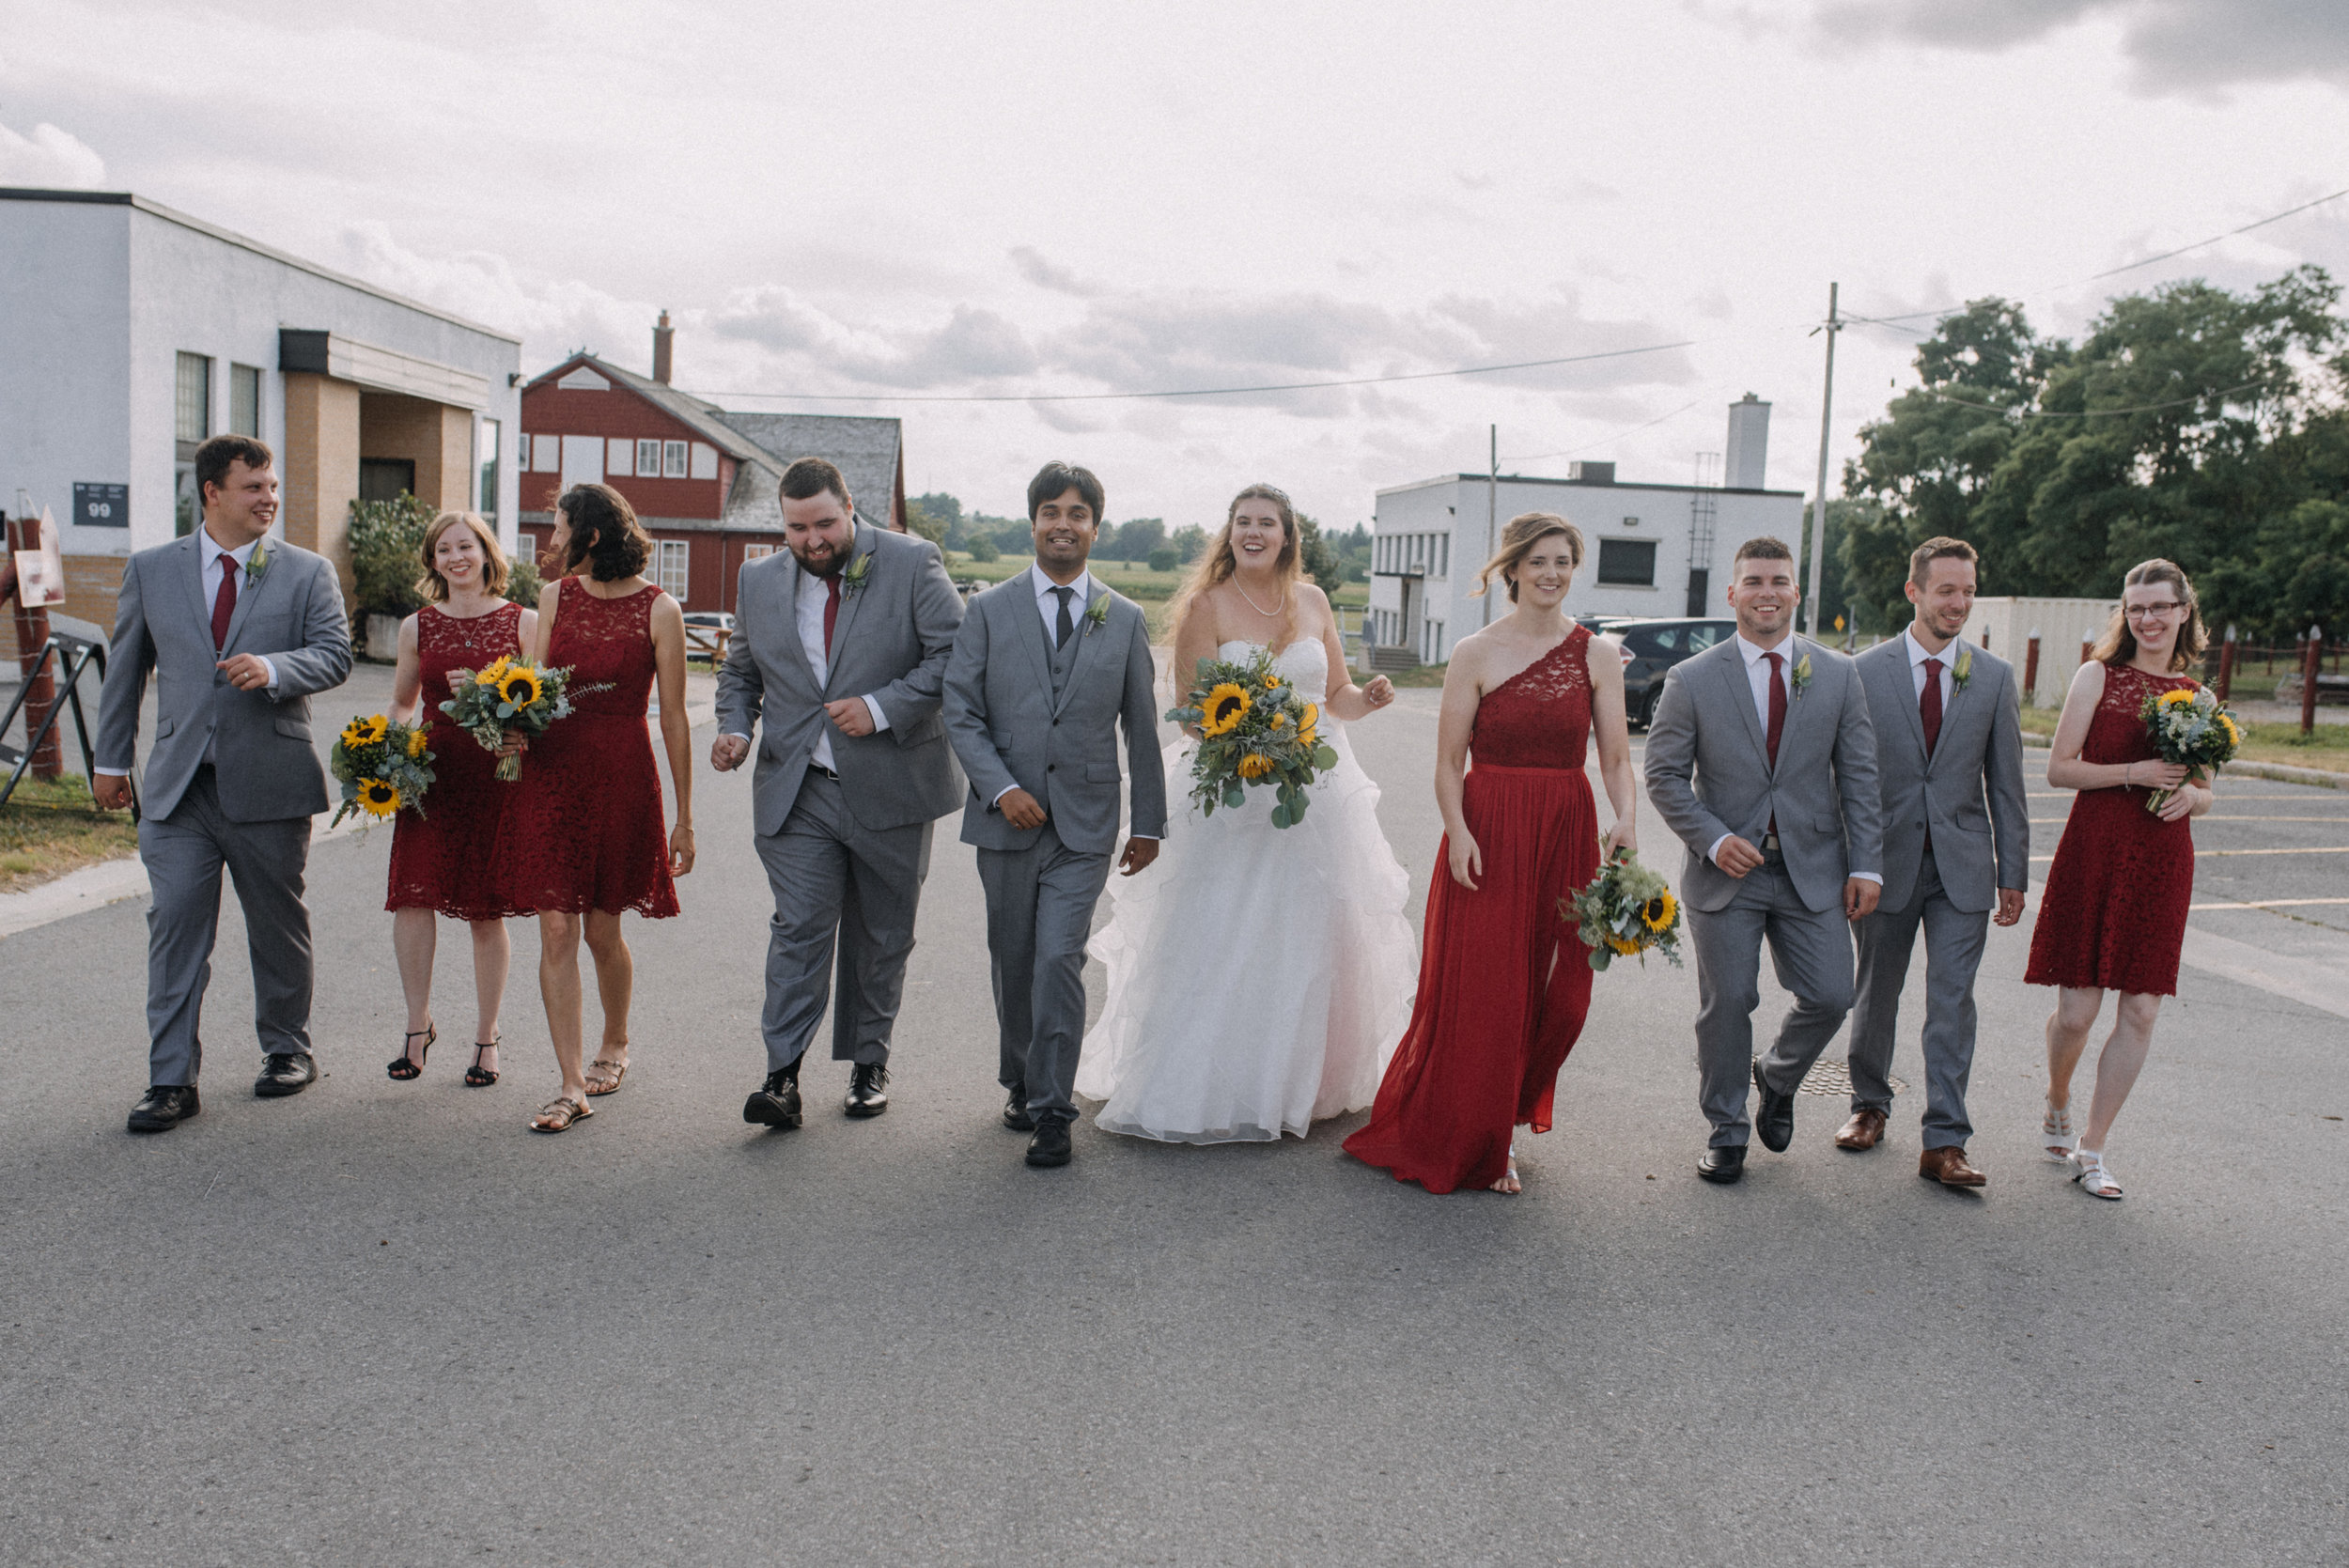 photographe_gatineau_mariage_wedding_photographer_ottawa_candid_lifestyle_documentary_natural_family_familly (9).jpg